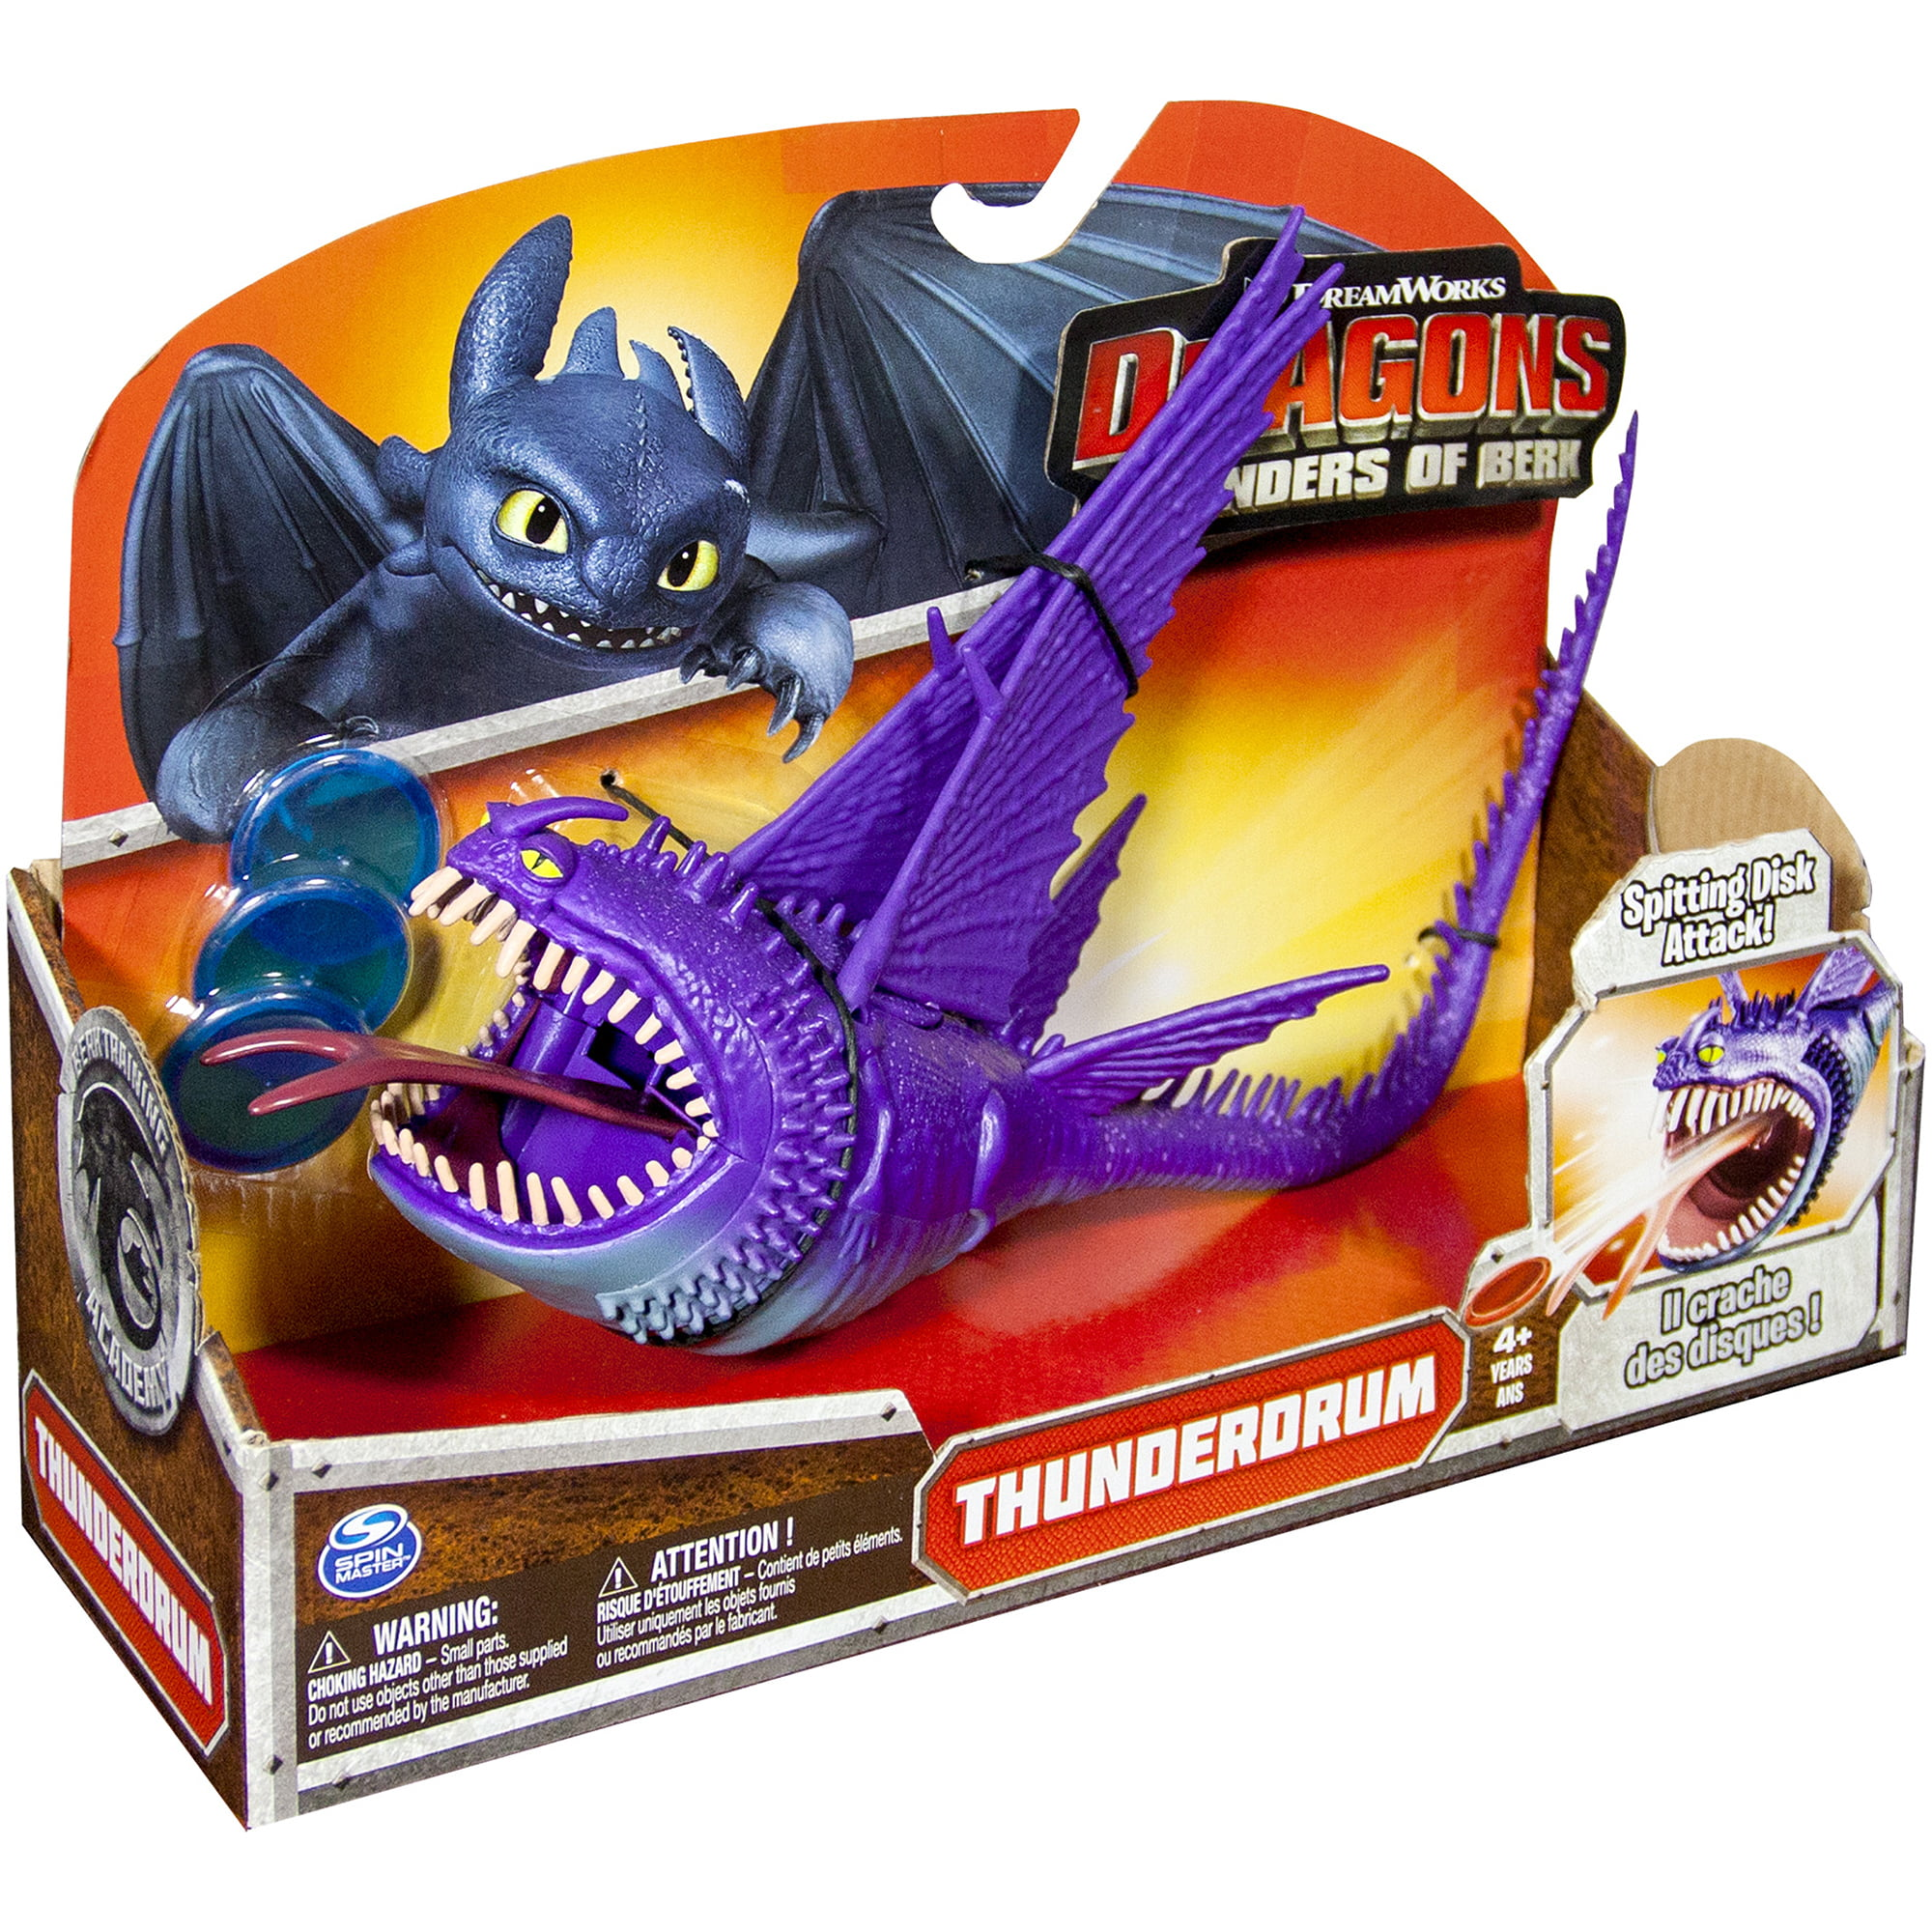 How to train your dragon dreamworks dragons defenders of berk how to train your dragon dreamworks dragons defenders of berk action figure thunderdrum purple walmart ccuart Image collections